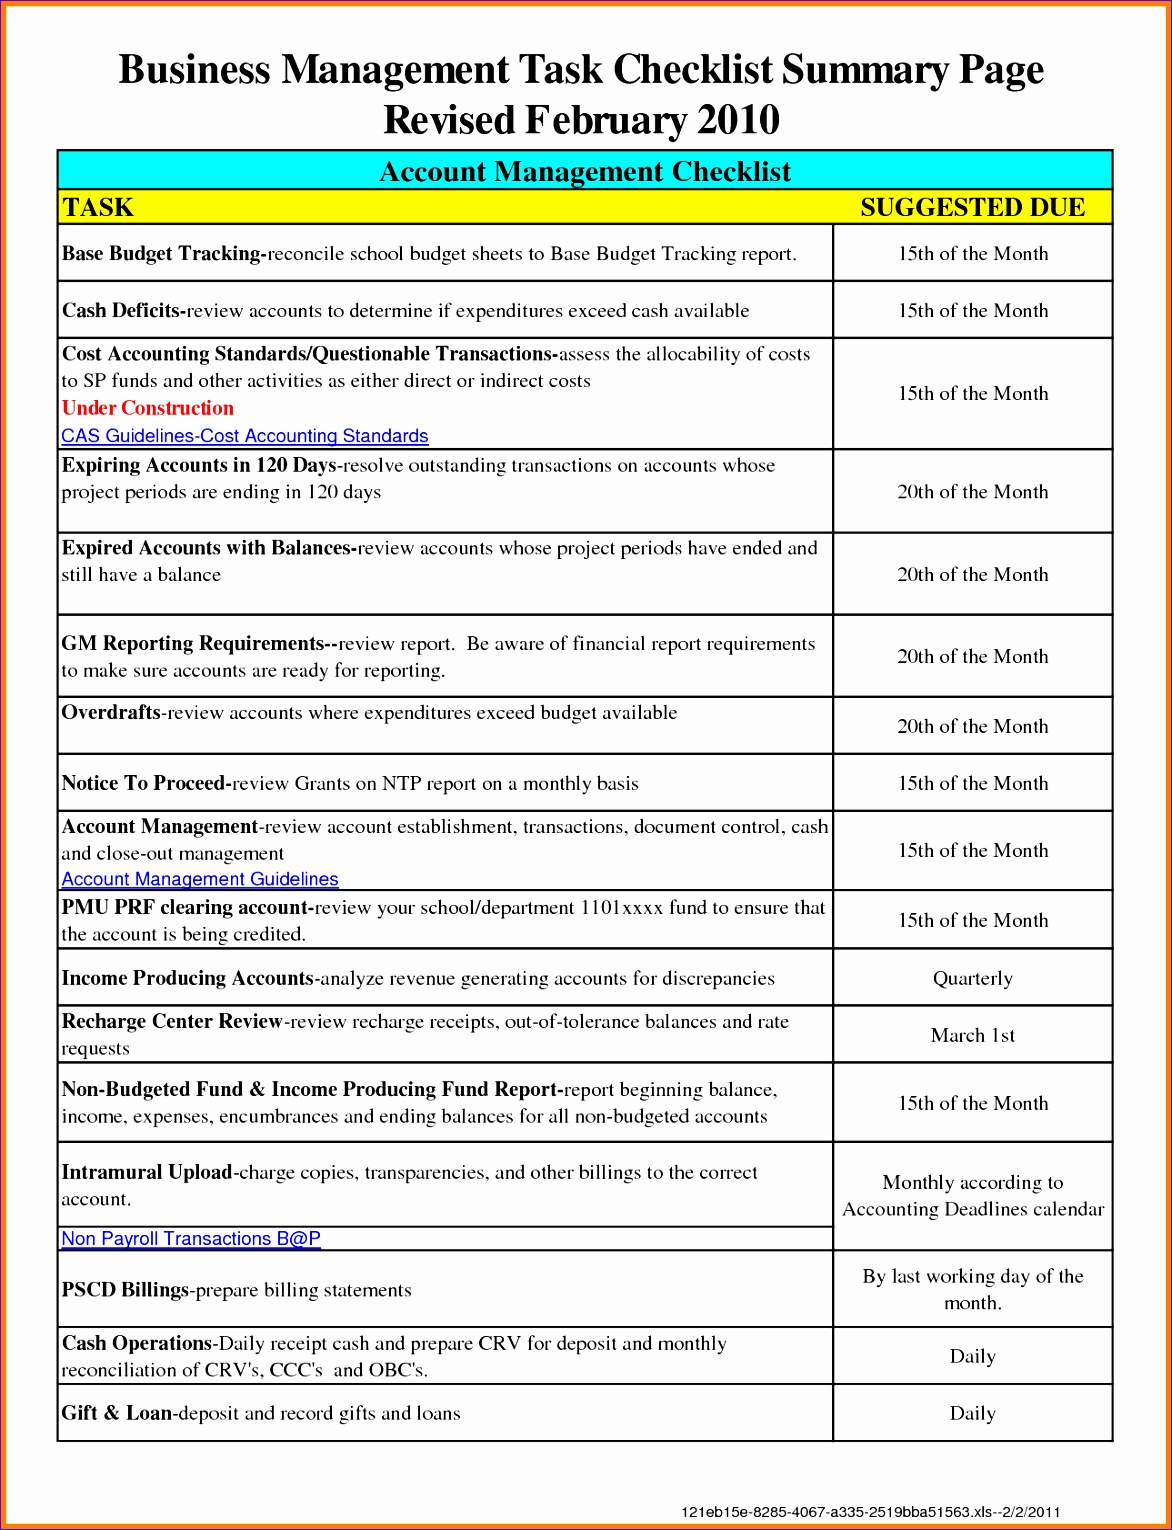 Quality Checklist Template Excel Zggvi Awesome Work Checklist Template Excel Pacq